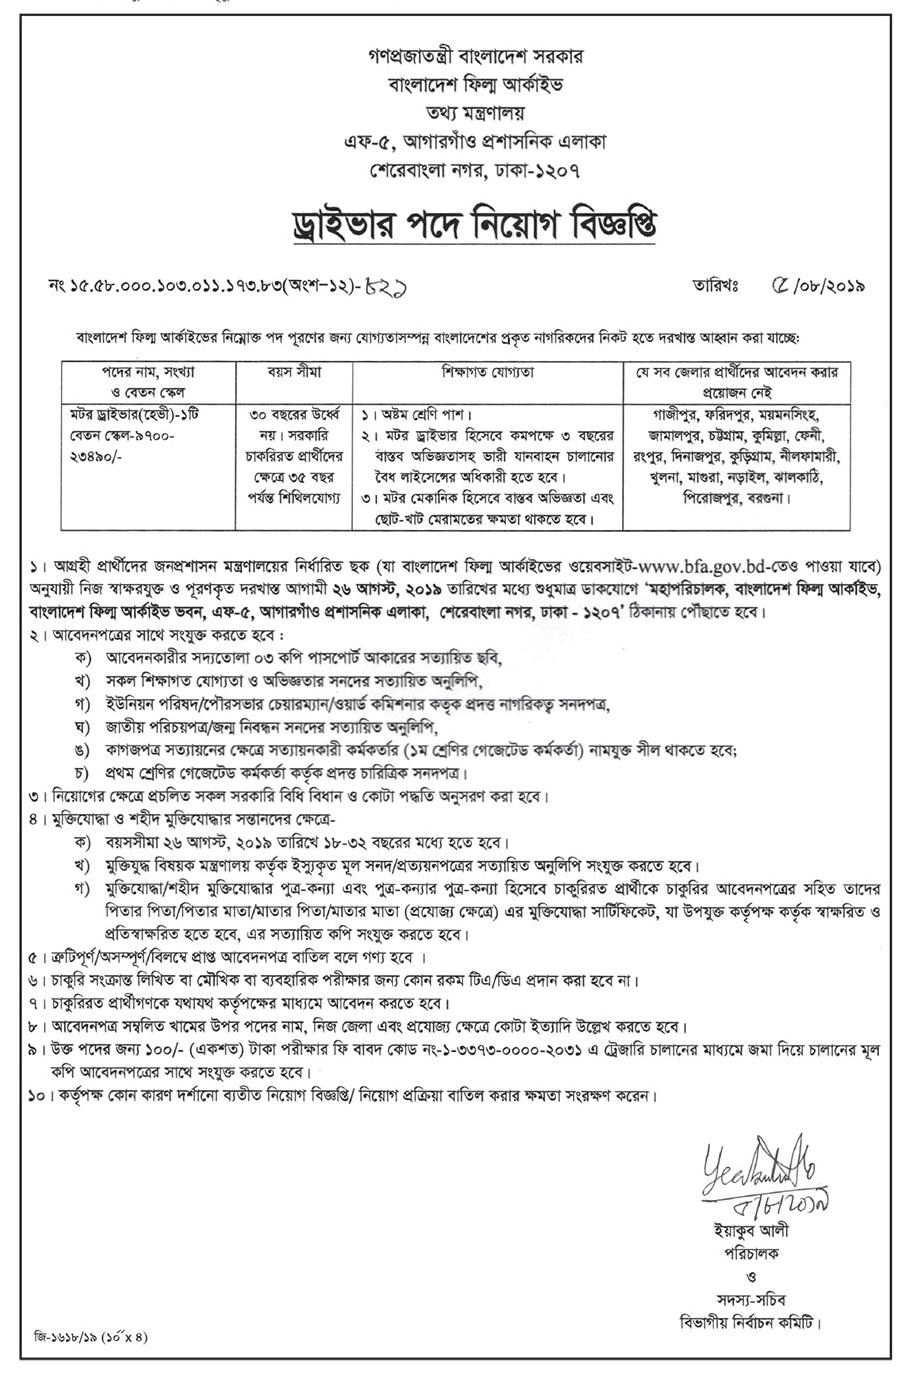 Ministry Of Information MOI Job Circular 2019